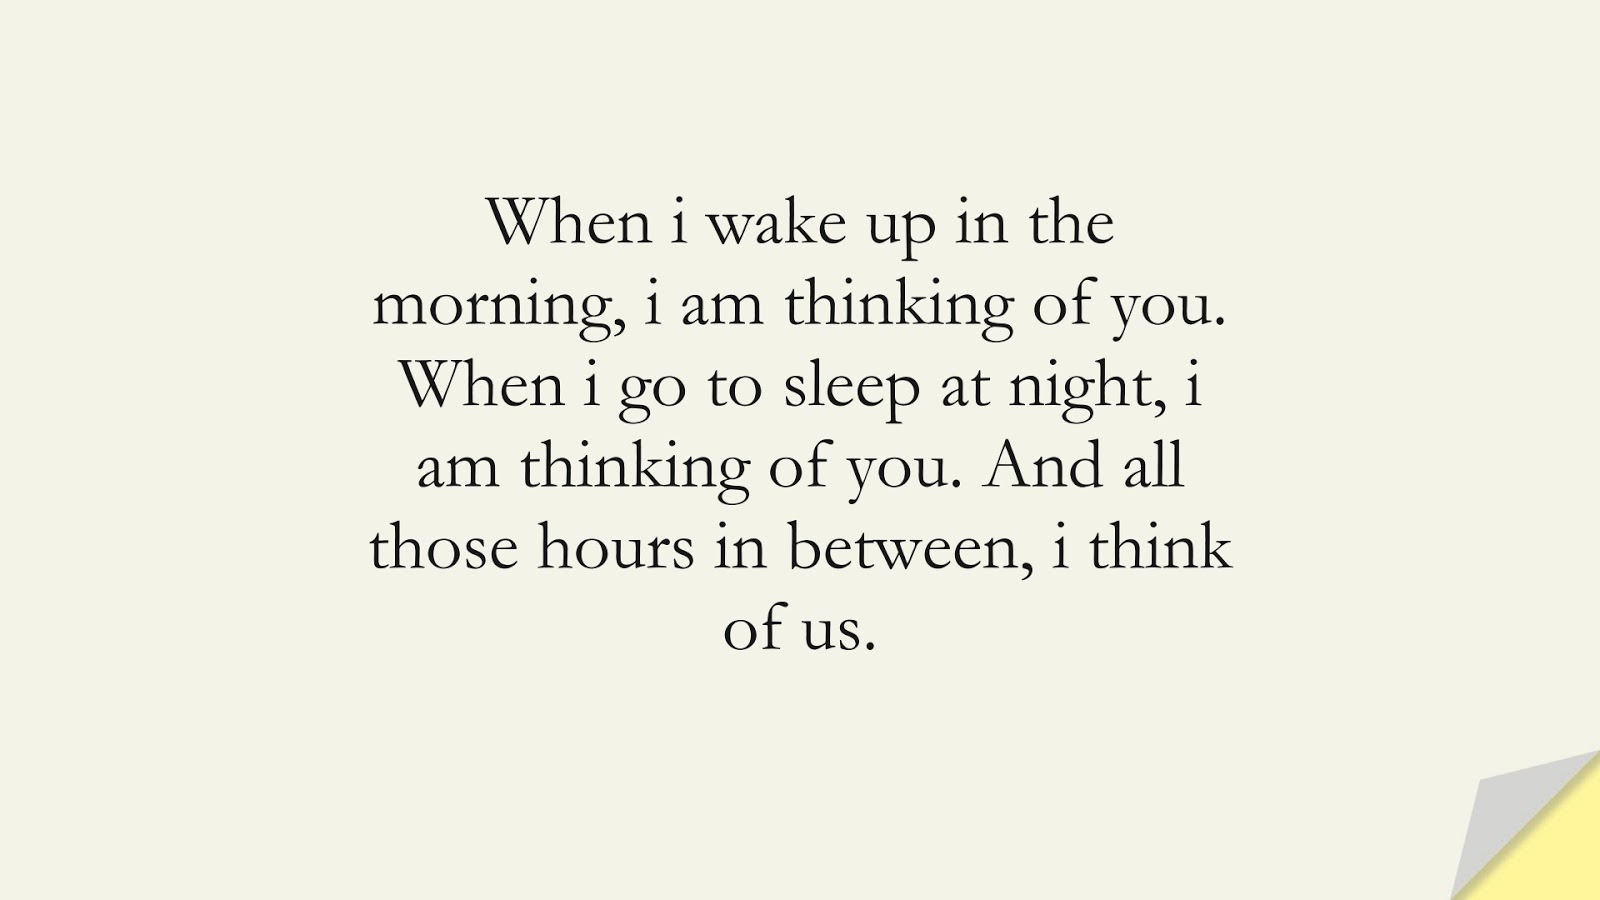 When i wake up in the morning, i am thinking of you. When i go to sleep at night, i am thinking of you. And all those hours in between, i think of us.FALSE